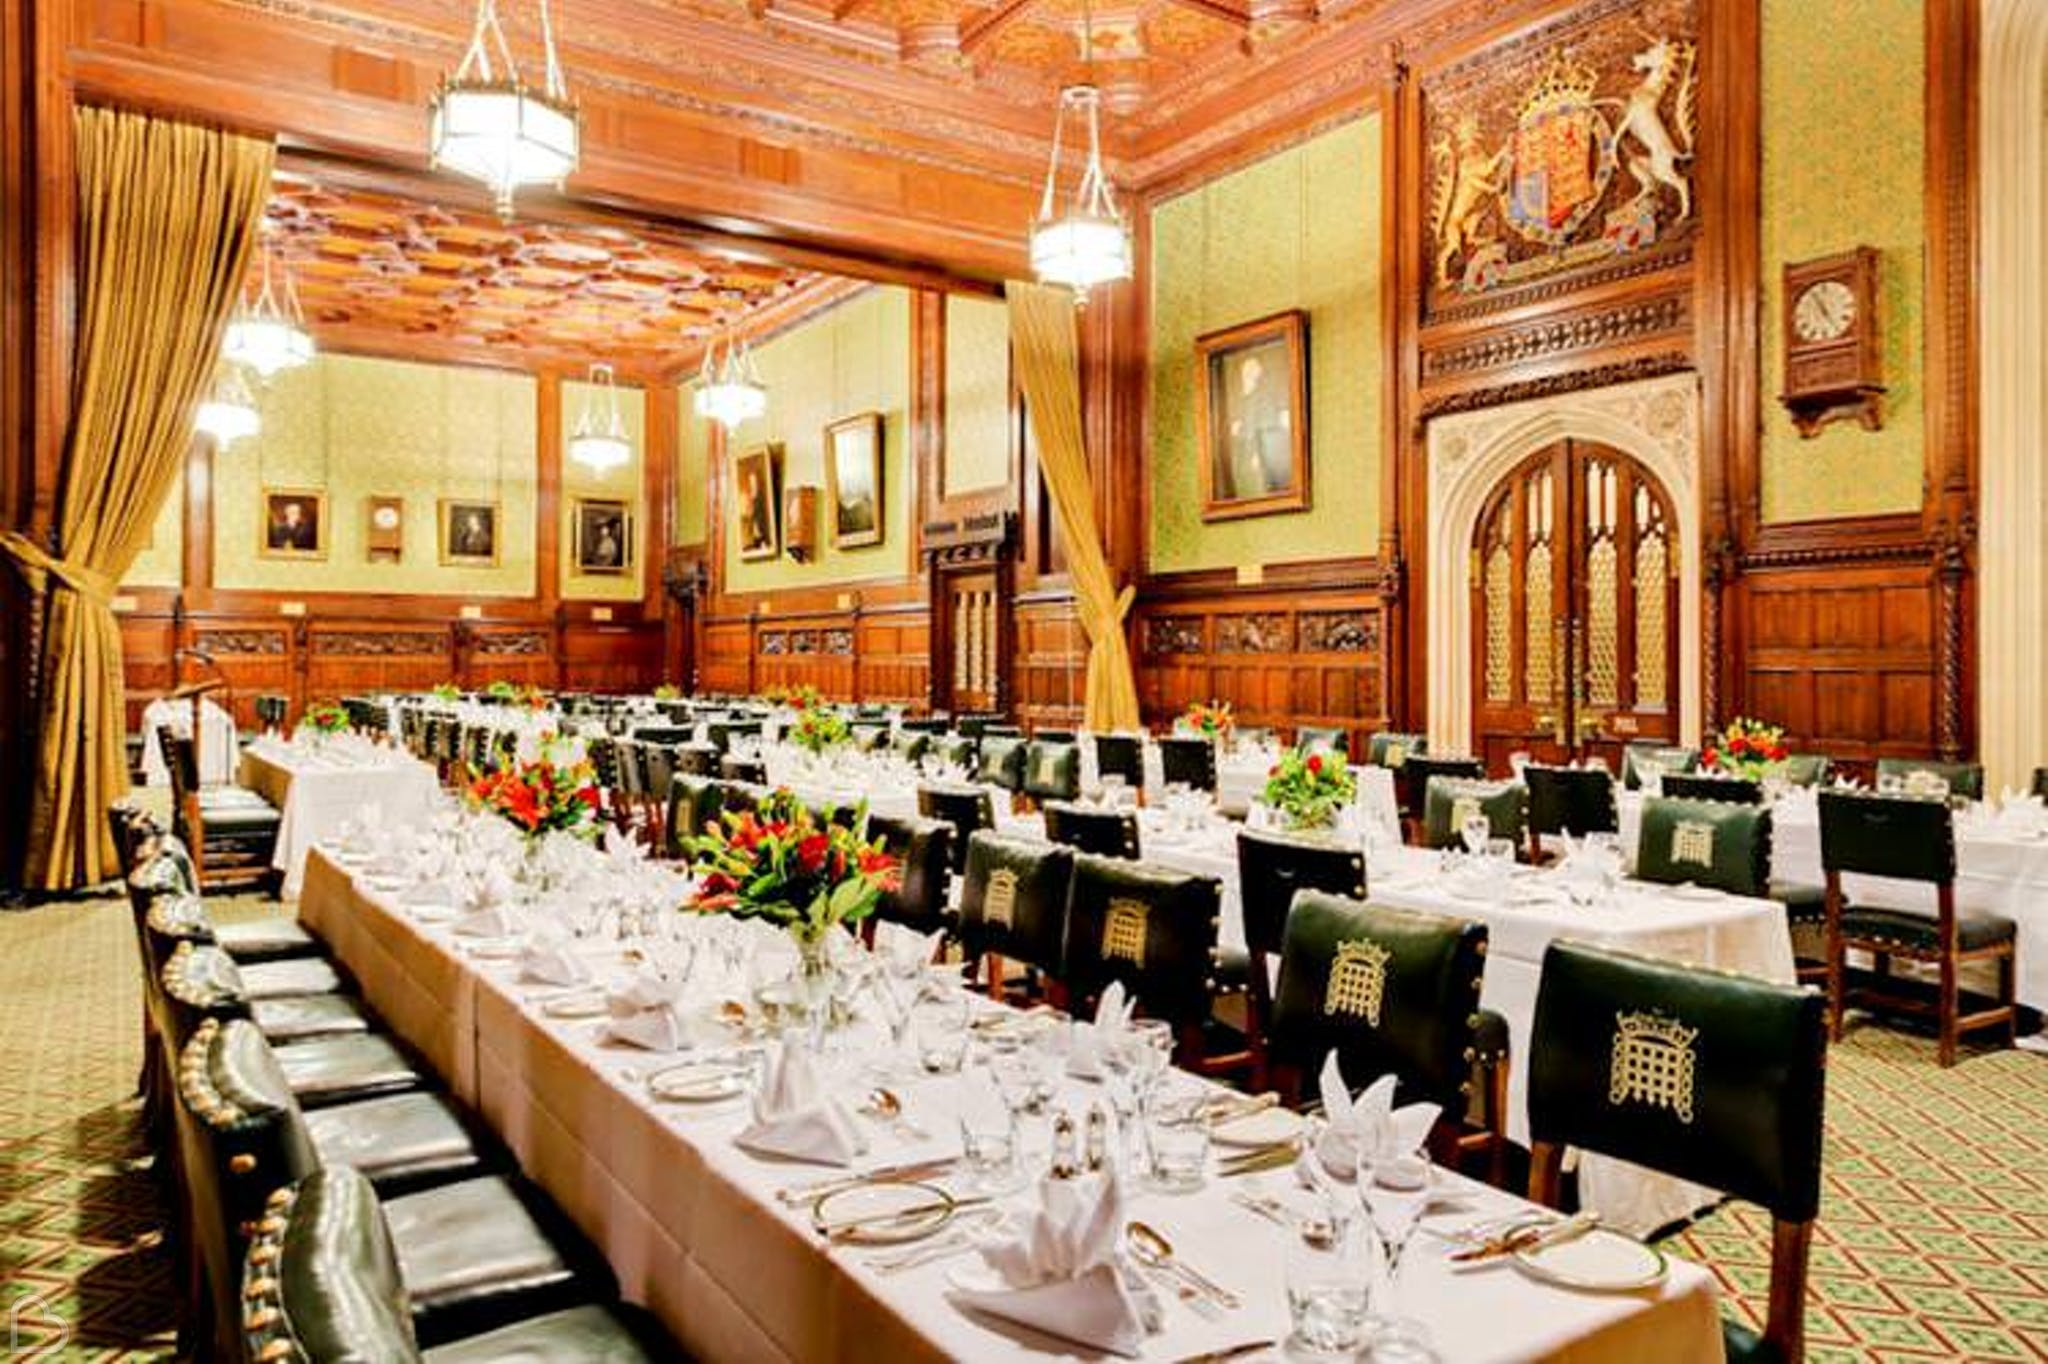 house of commons set up for wedding dinner.